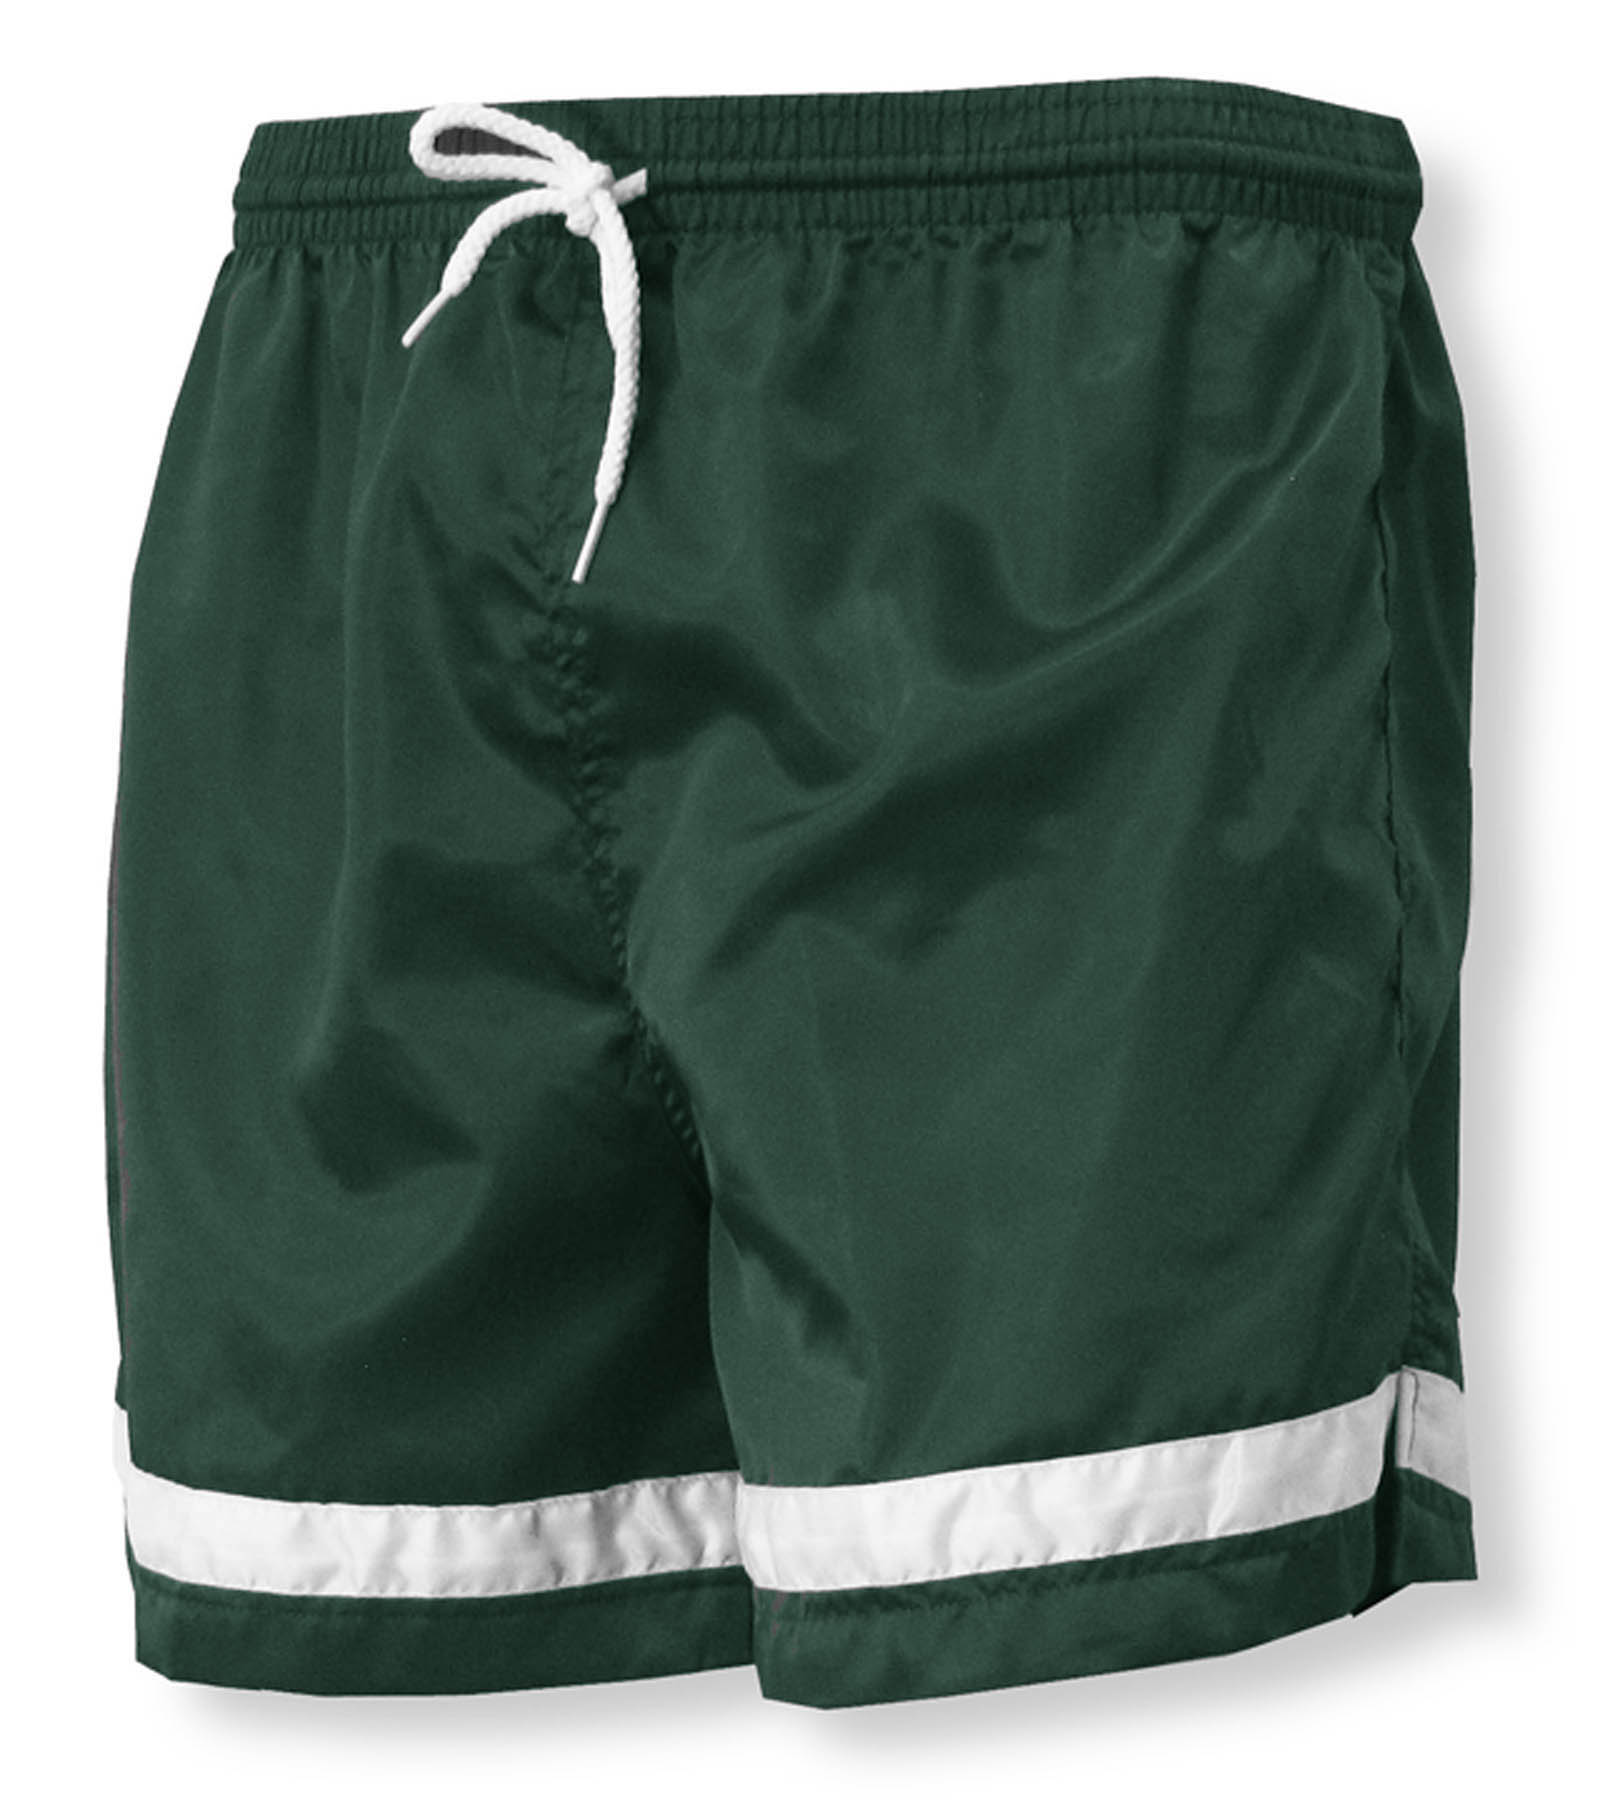 Vashon soccer shorts in forest/white by Code Four Athletics